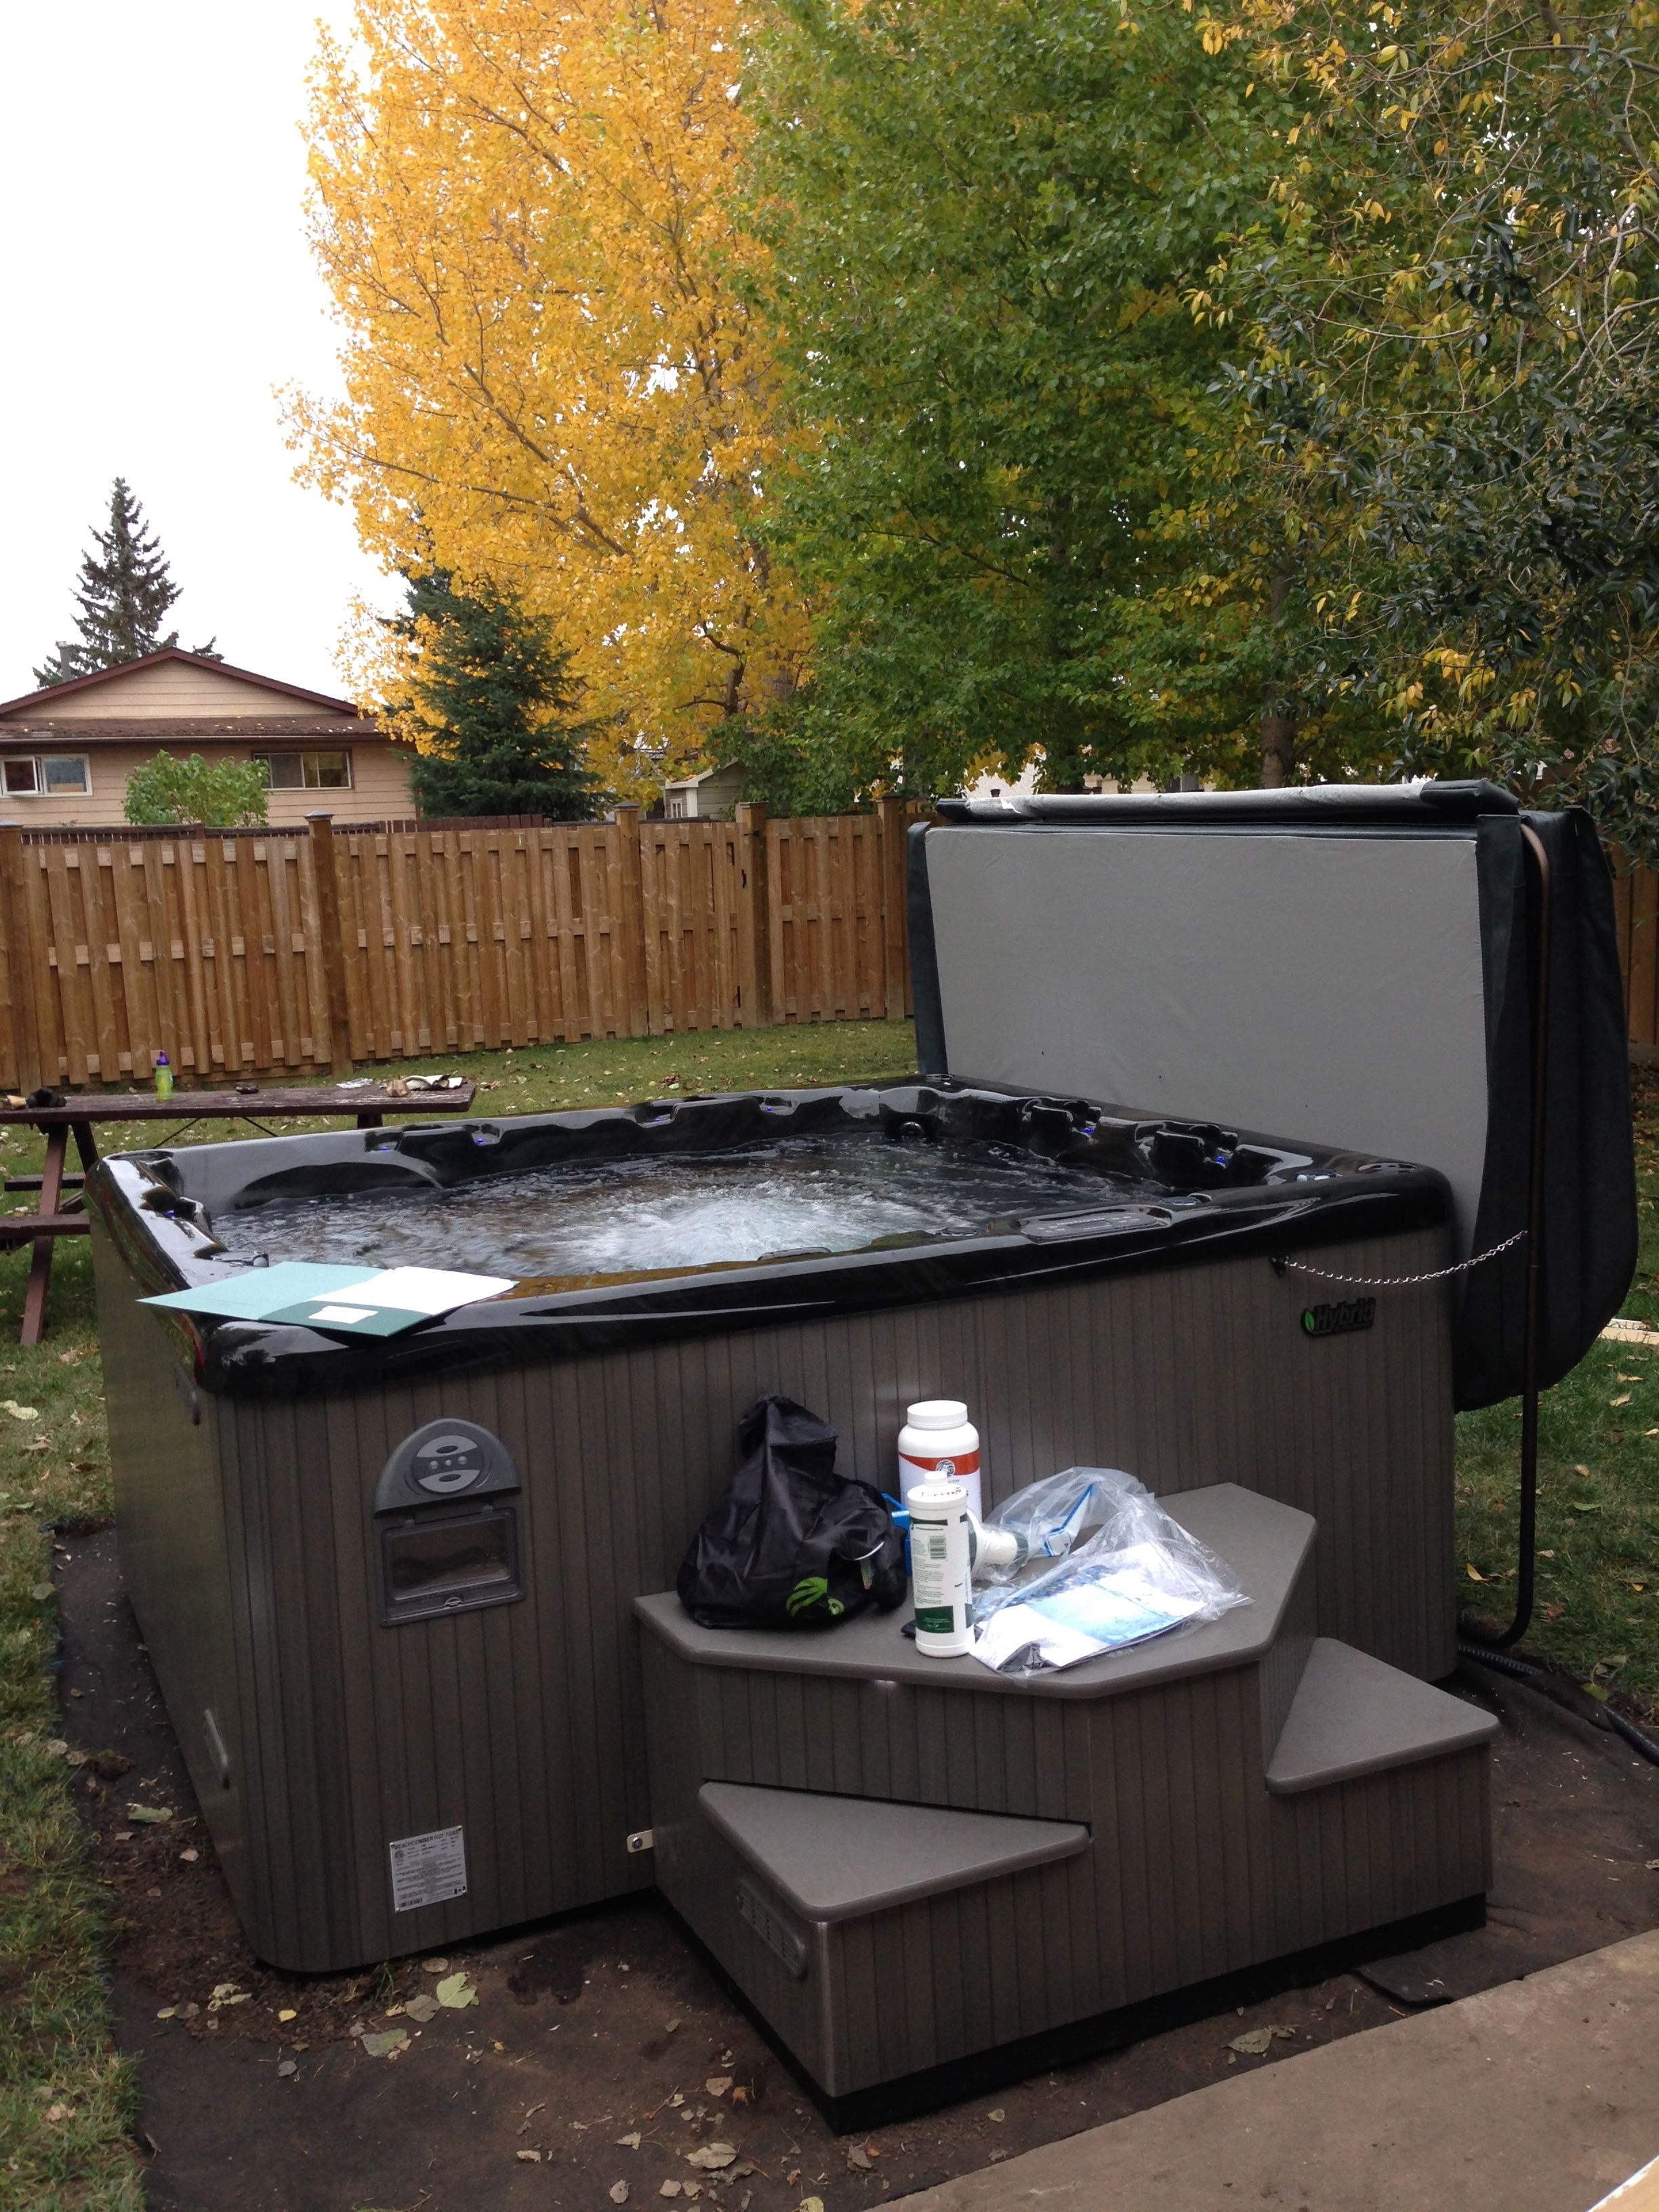 beachcomber hot tub model 720 install [ 2448 x 3264 Pixel ]